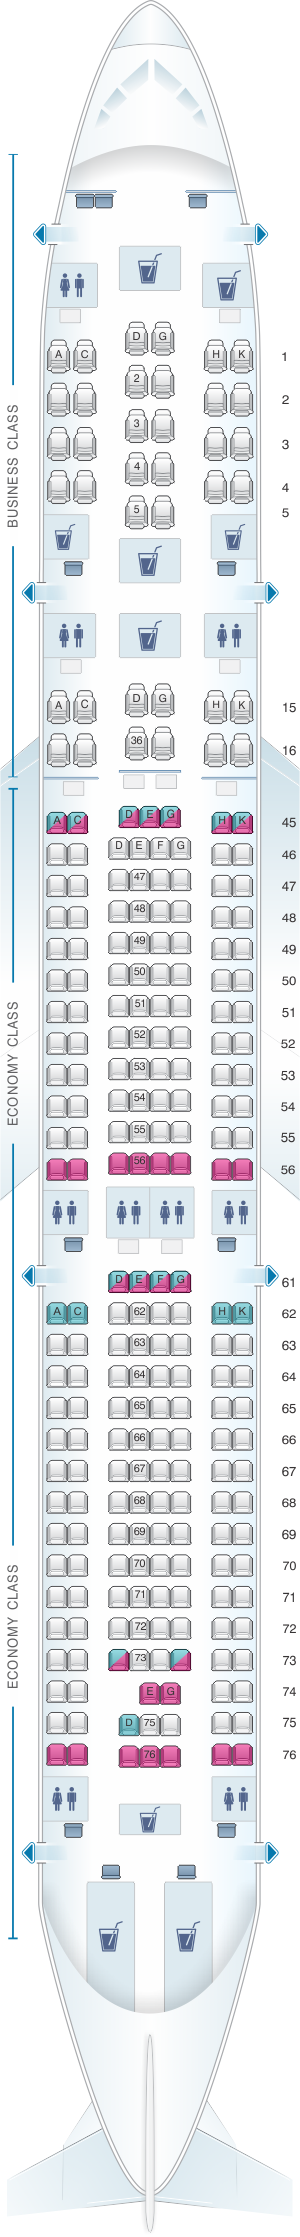 Seat map for South African Airways Airbus A340 300 V1